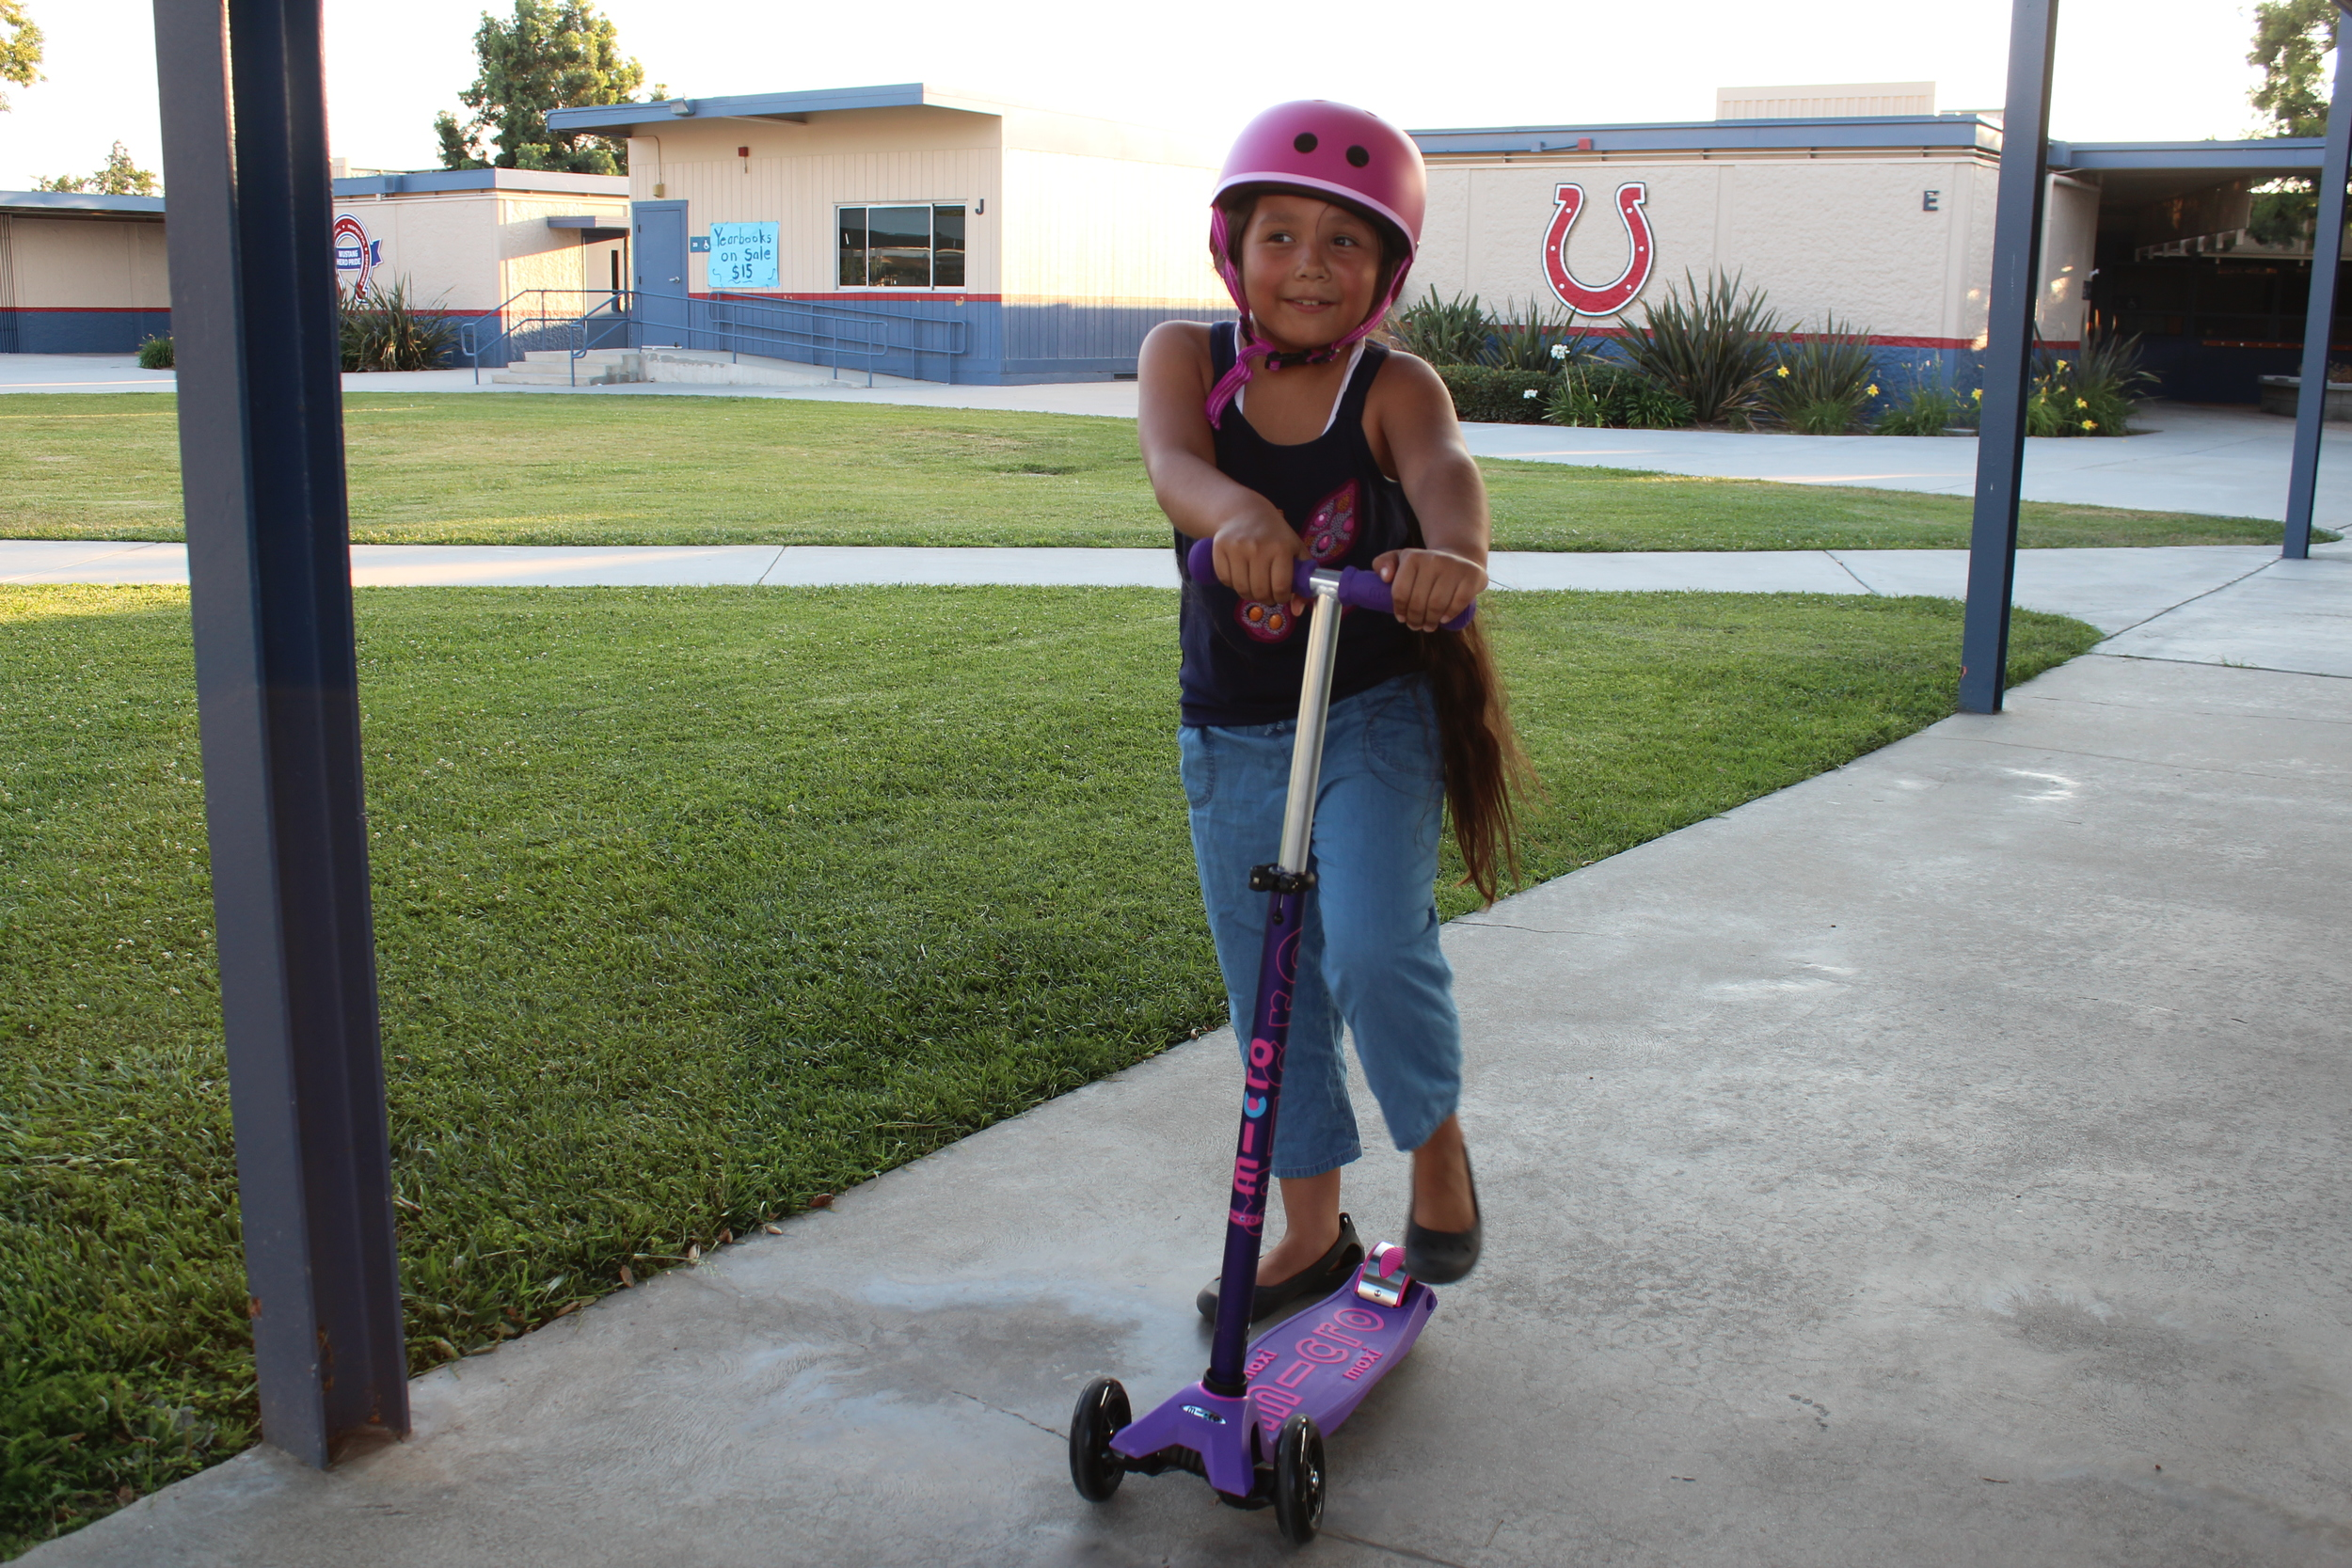 After school fun while building her confidence, love this! And she's all about safety with her matching helmet too.